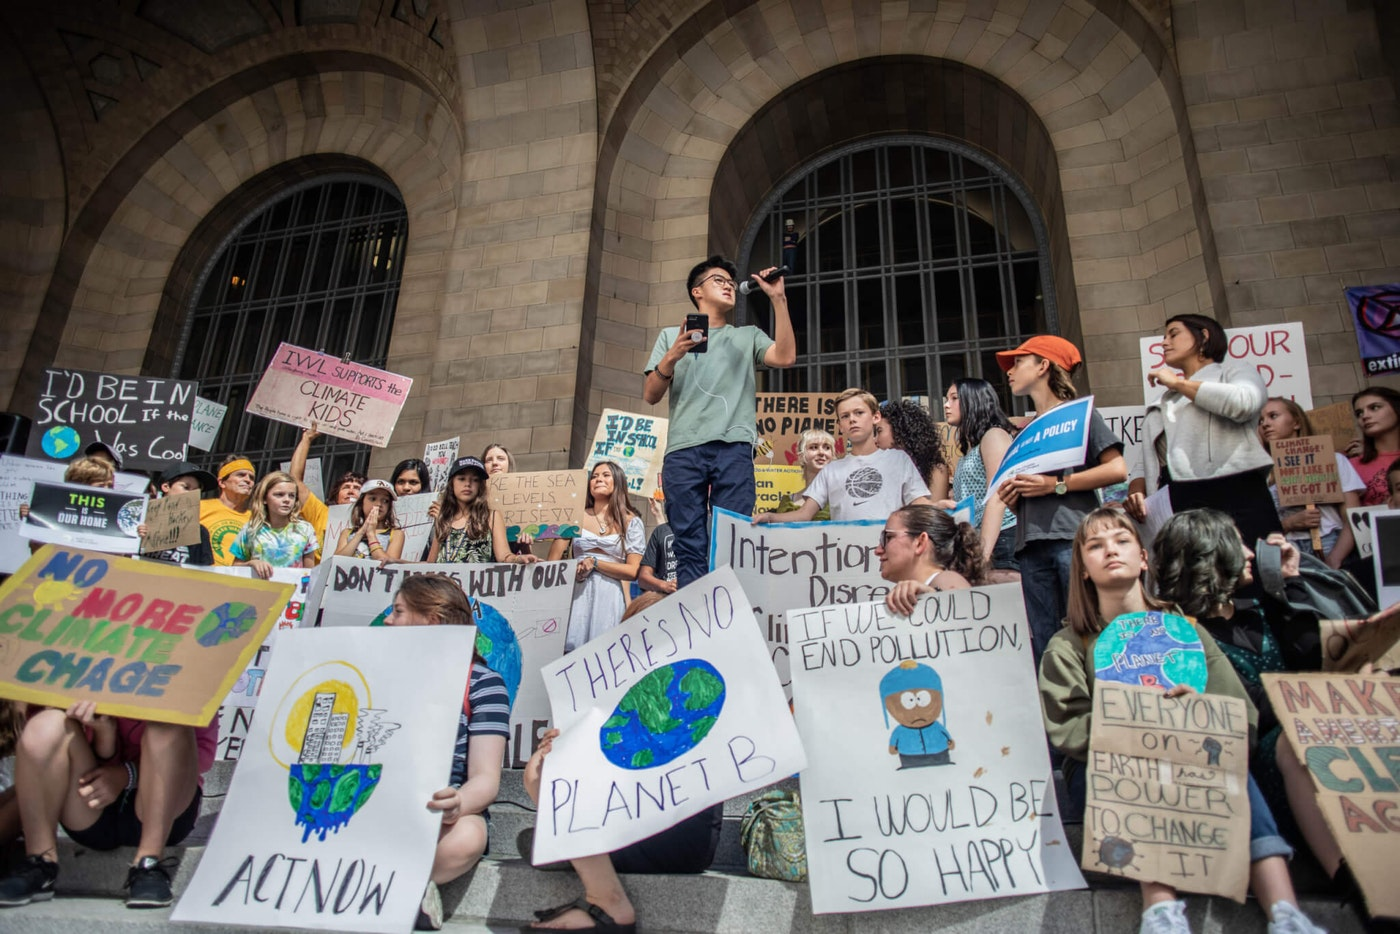 Rally in Pittsburgh, July 2019. Image via Shutterstock